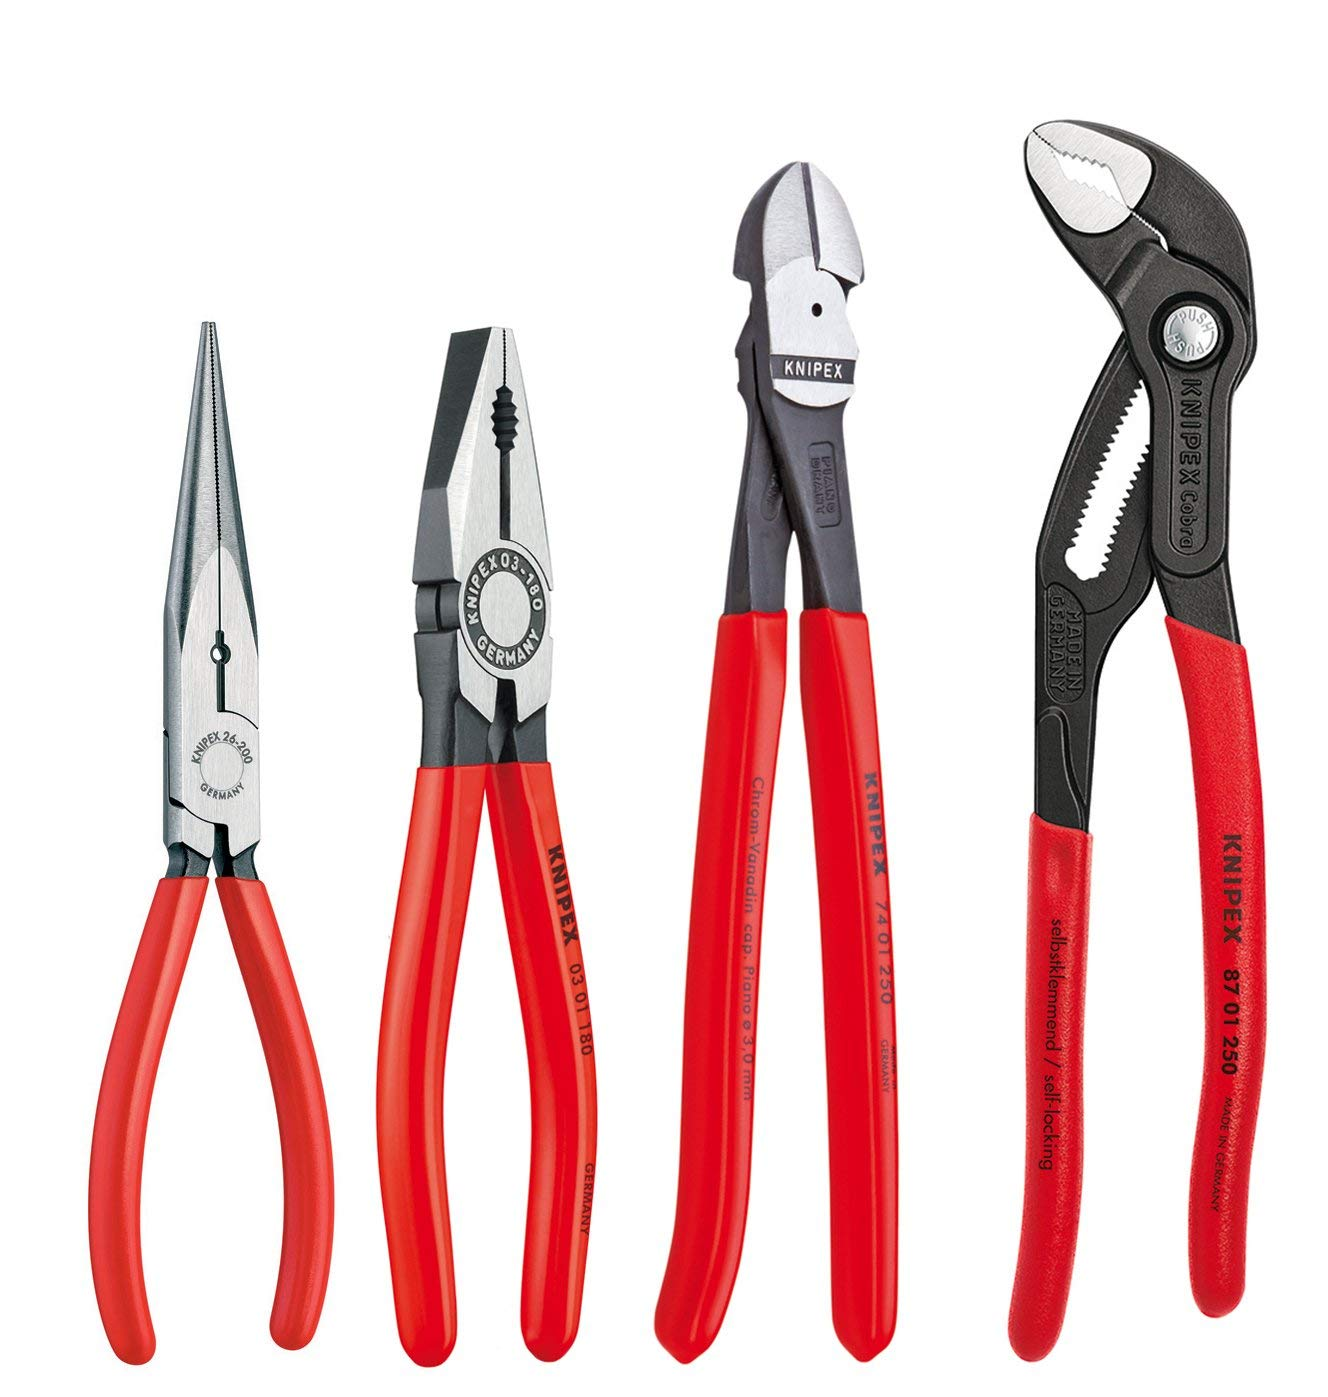 KNIPEX Tools 9K 00 80 94 US Cobra Combination Cutter and Needle Nose Pliers 4-Piece Set (2 Units) by KNIPEX Tools (Image #1)